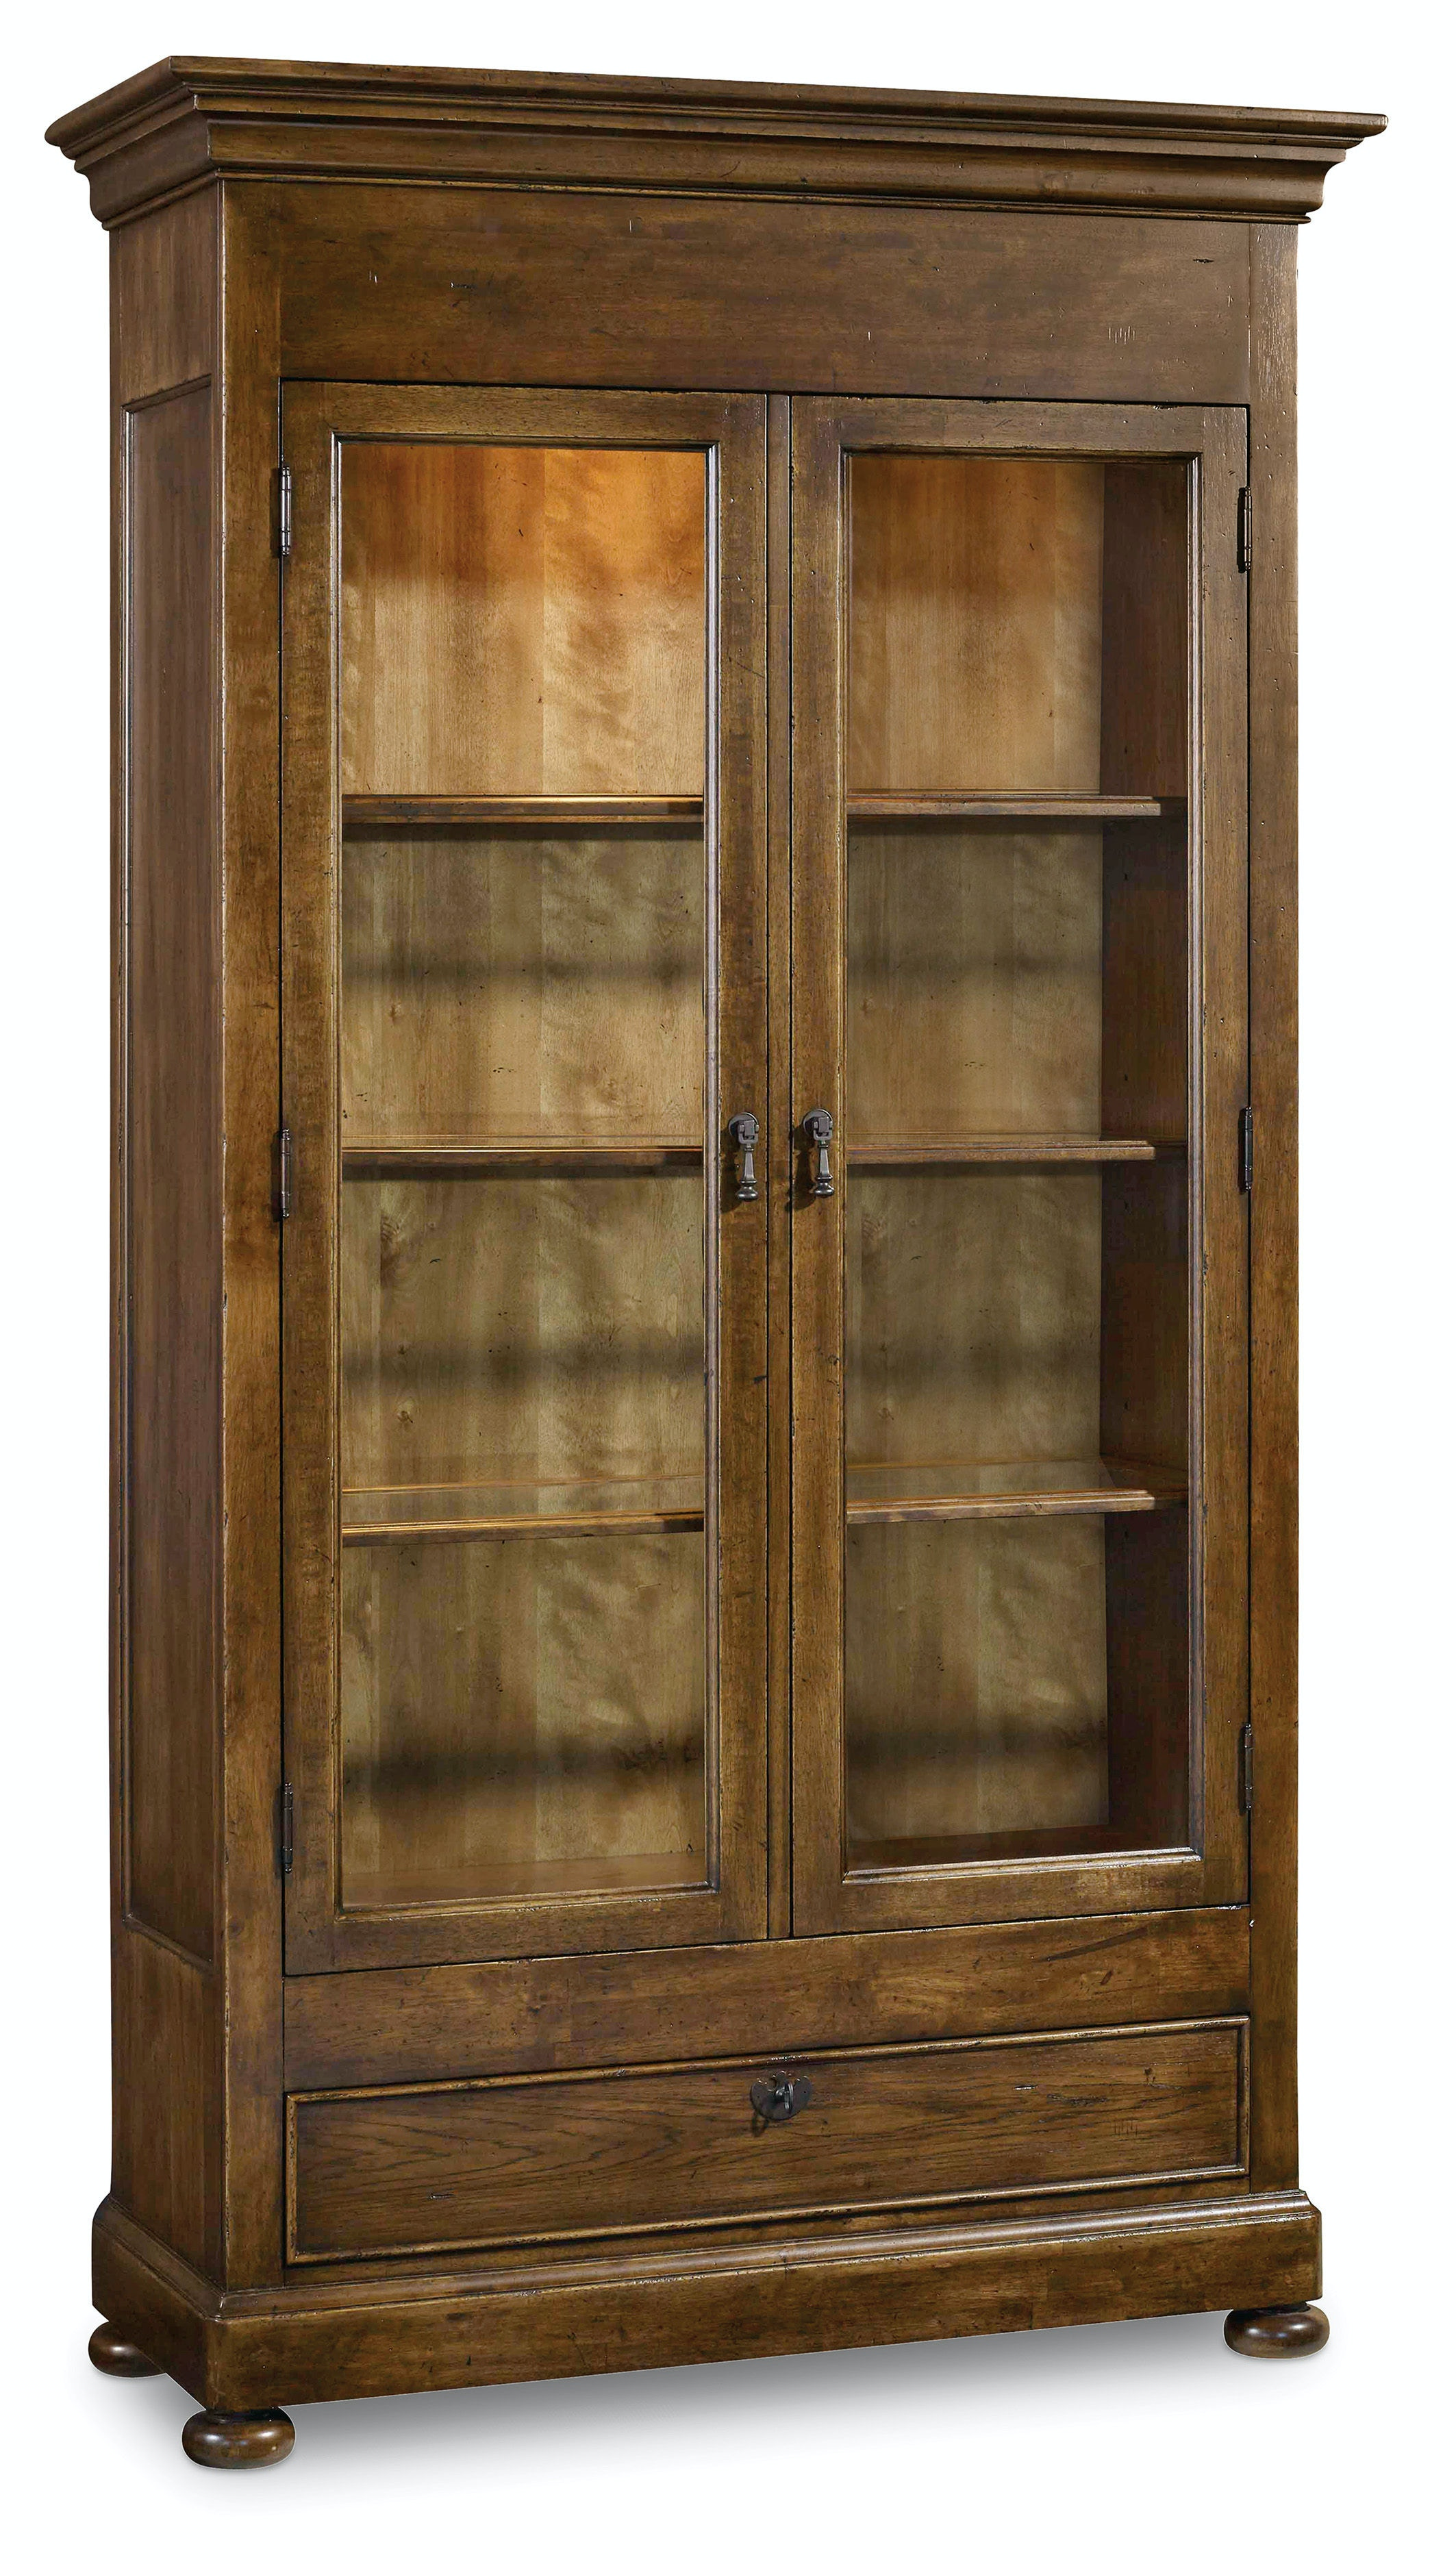 Hooker furniture dining room archivist display cabinet for Dining cabinet furniture